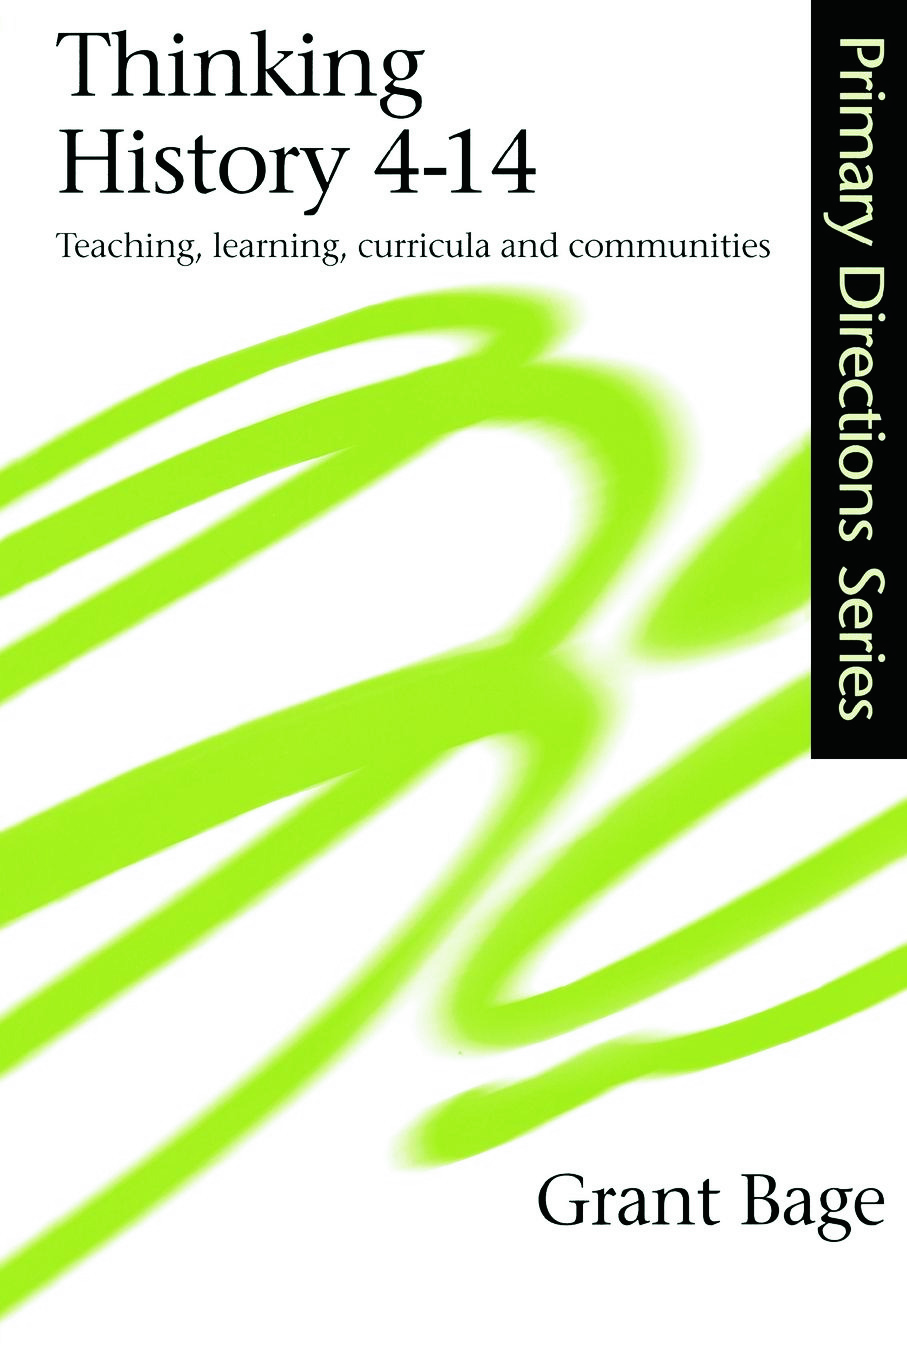 Thinking History 4-14: Teaching, Learning, Curricula and Communities, 1st Edition (Paperback) book cover